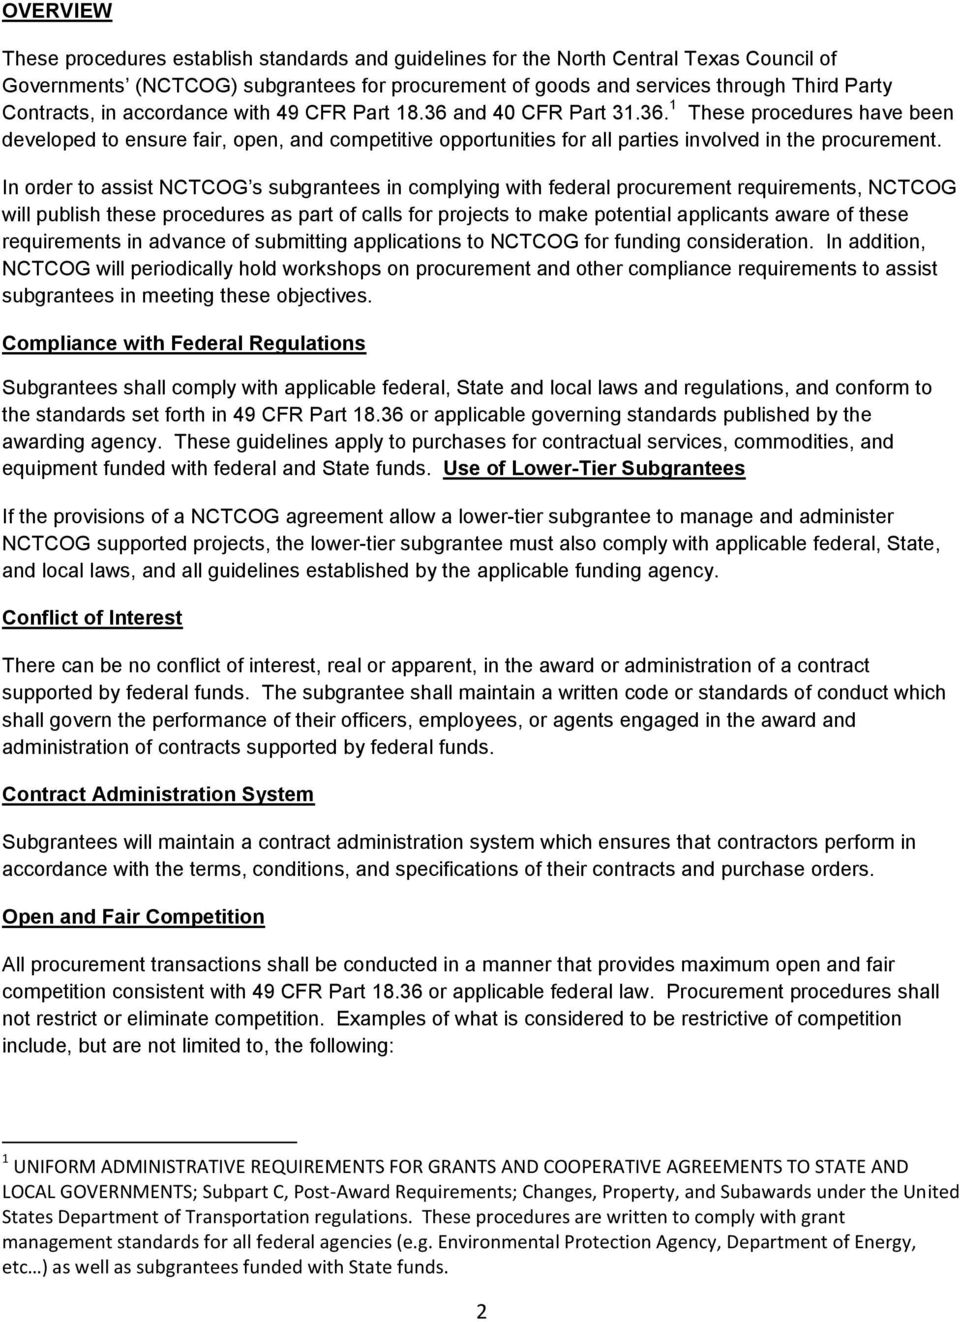 In rder t assist NCTCOG s subgrantees in cmplying with federal prcurement requirements, NCTCOG will publish these prcedures as part f calls fr prjects t make ptential applicants aware f these